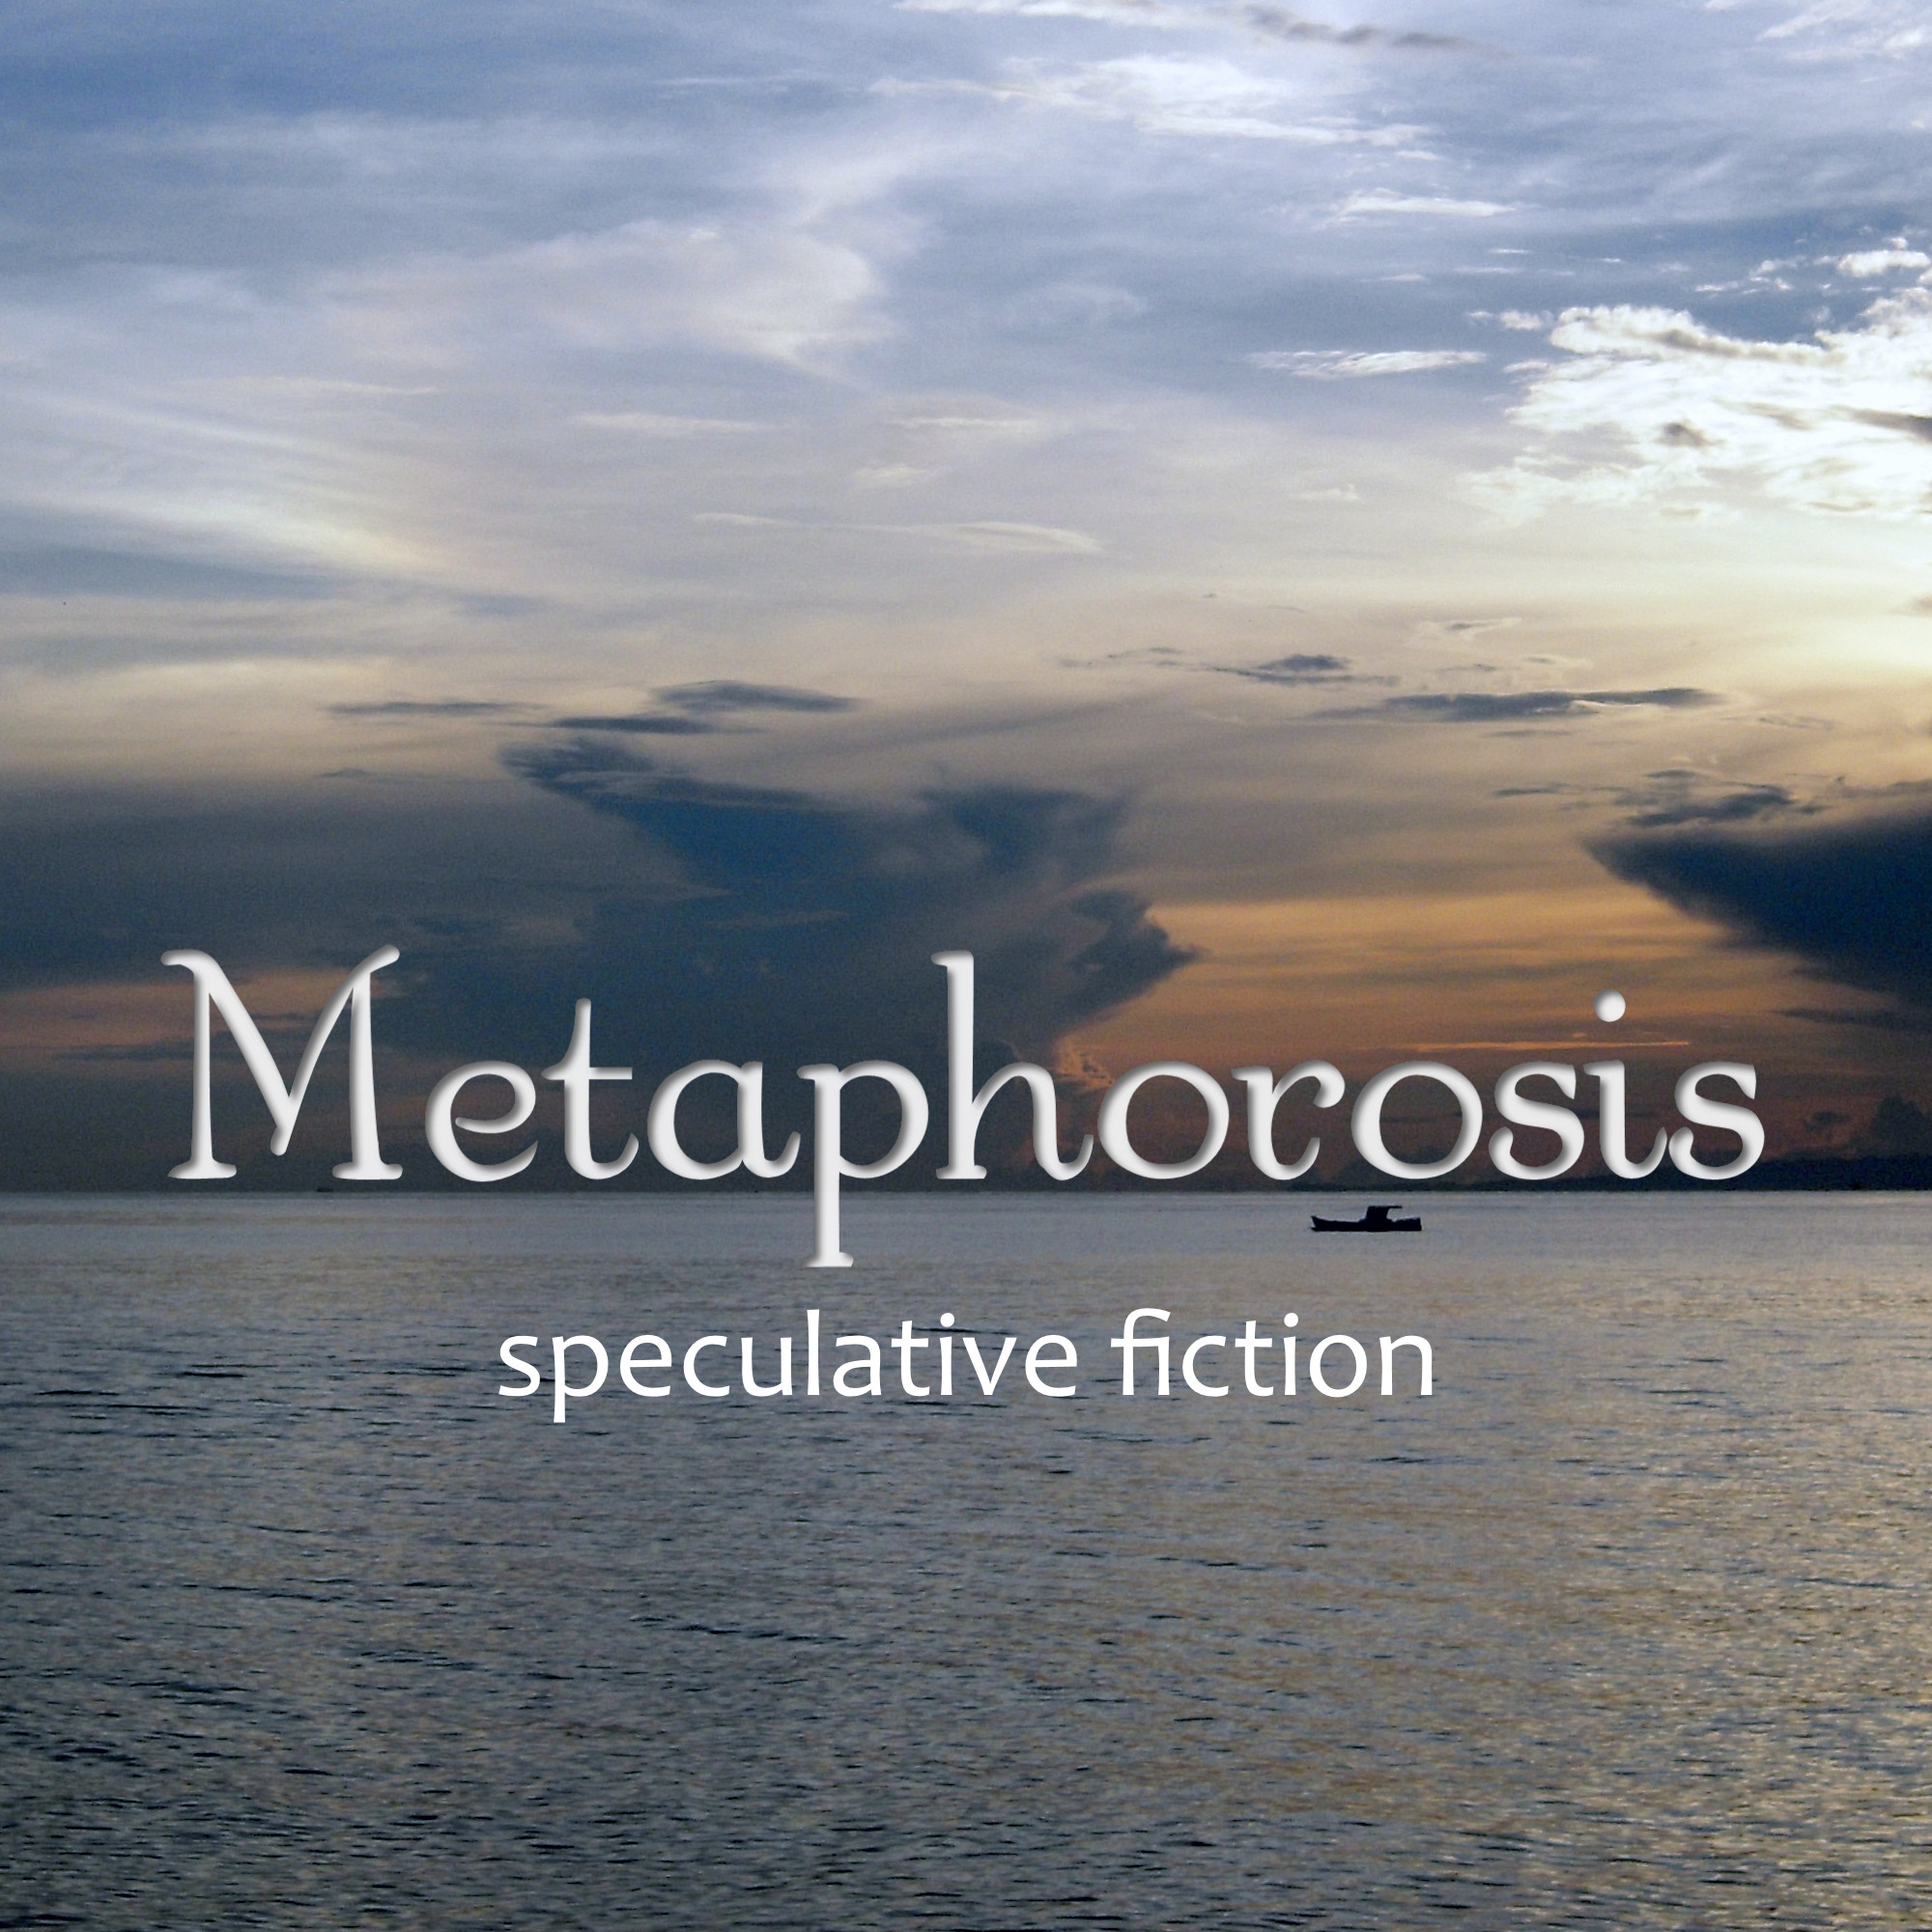 Metaphorosis magazine - beautifully written science fiction and fantasy